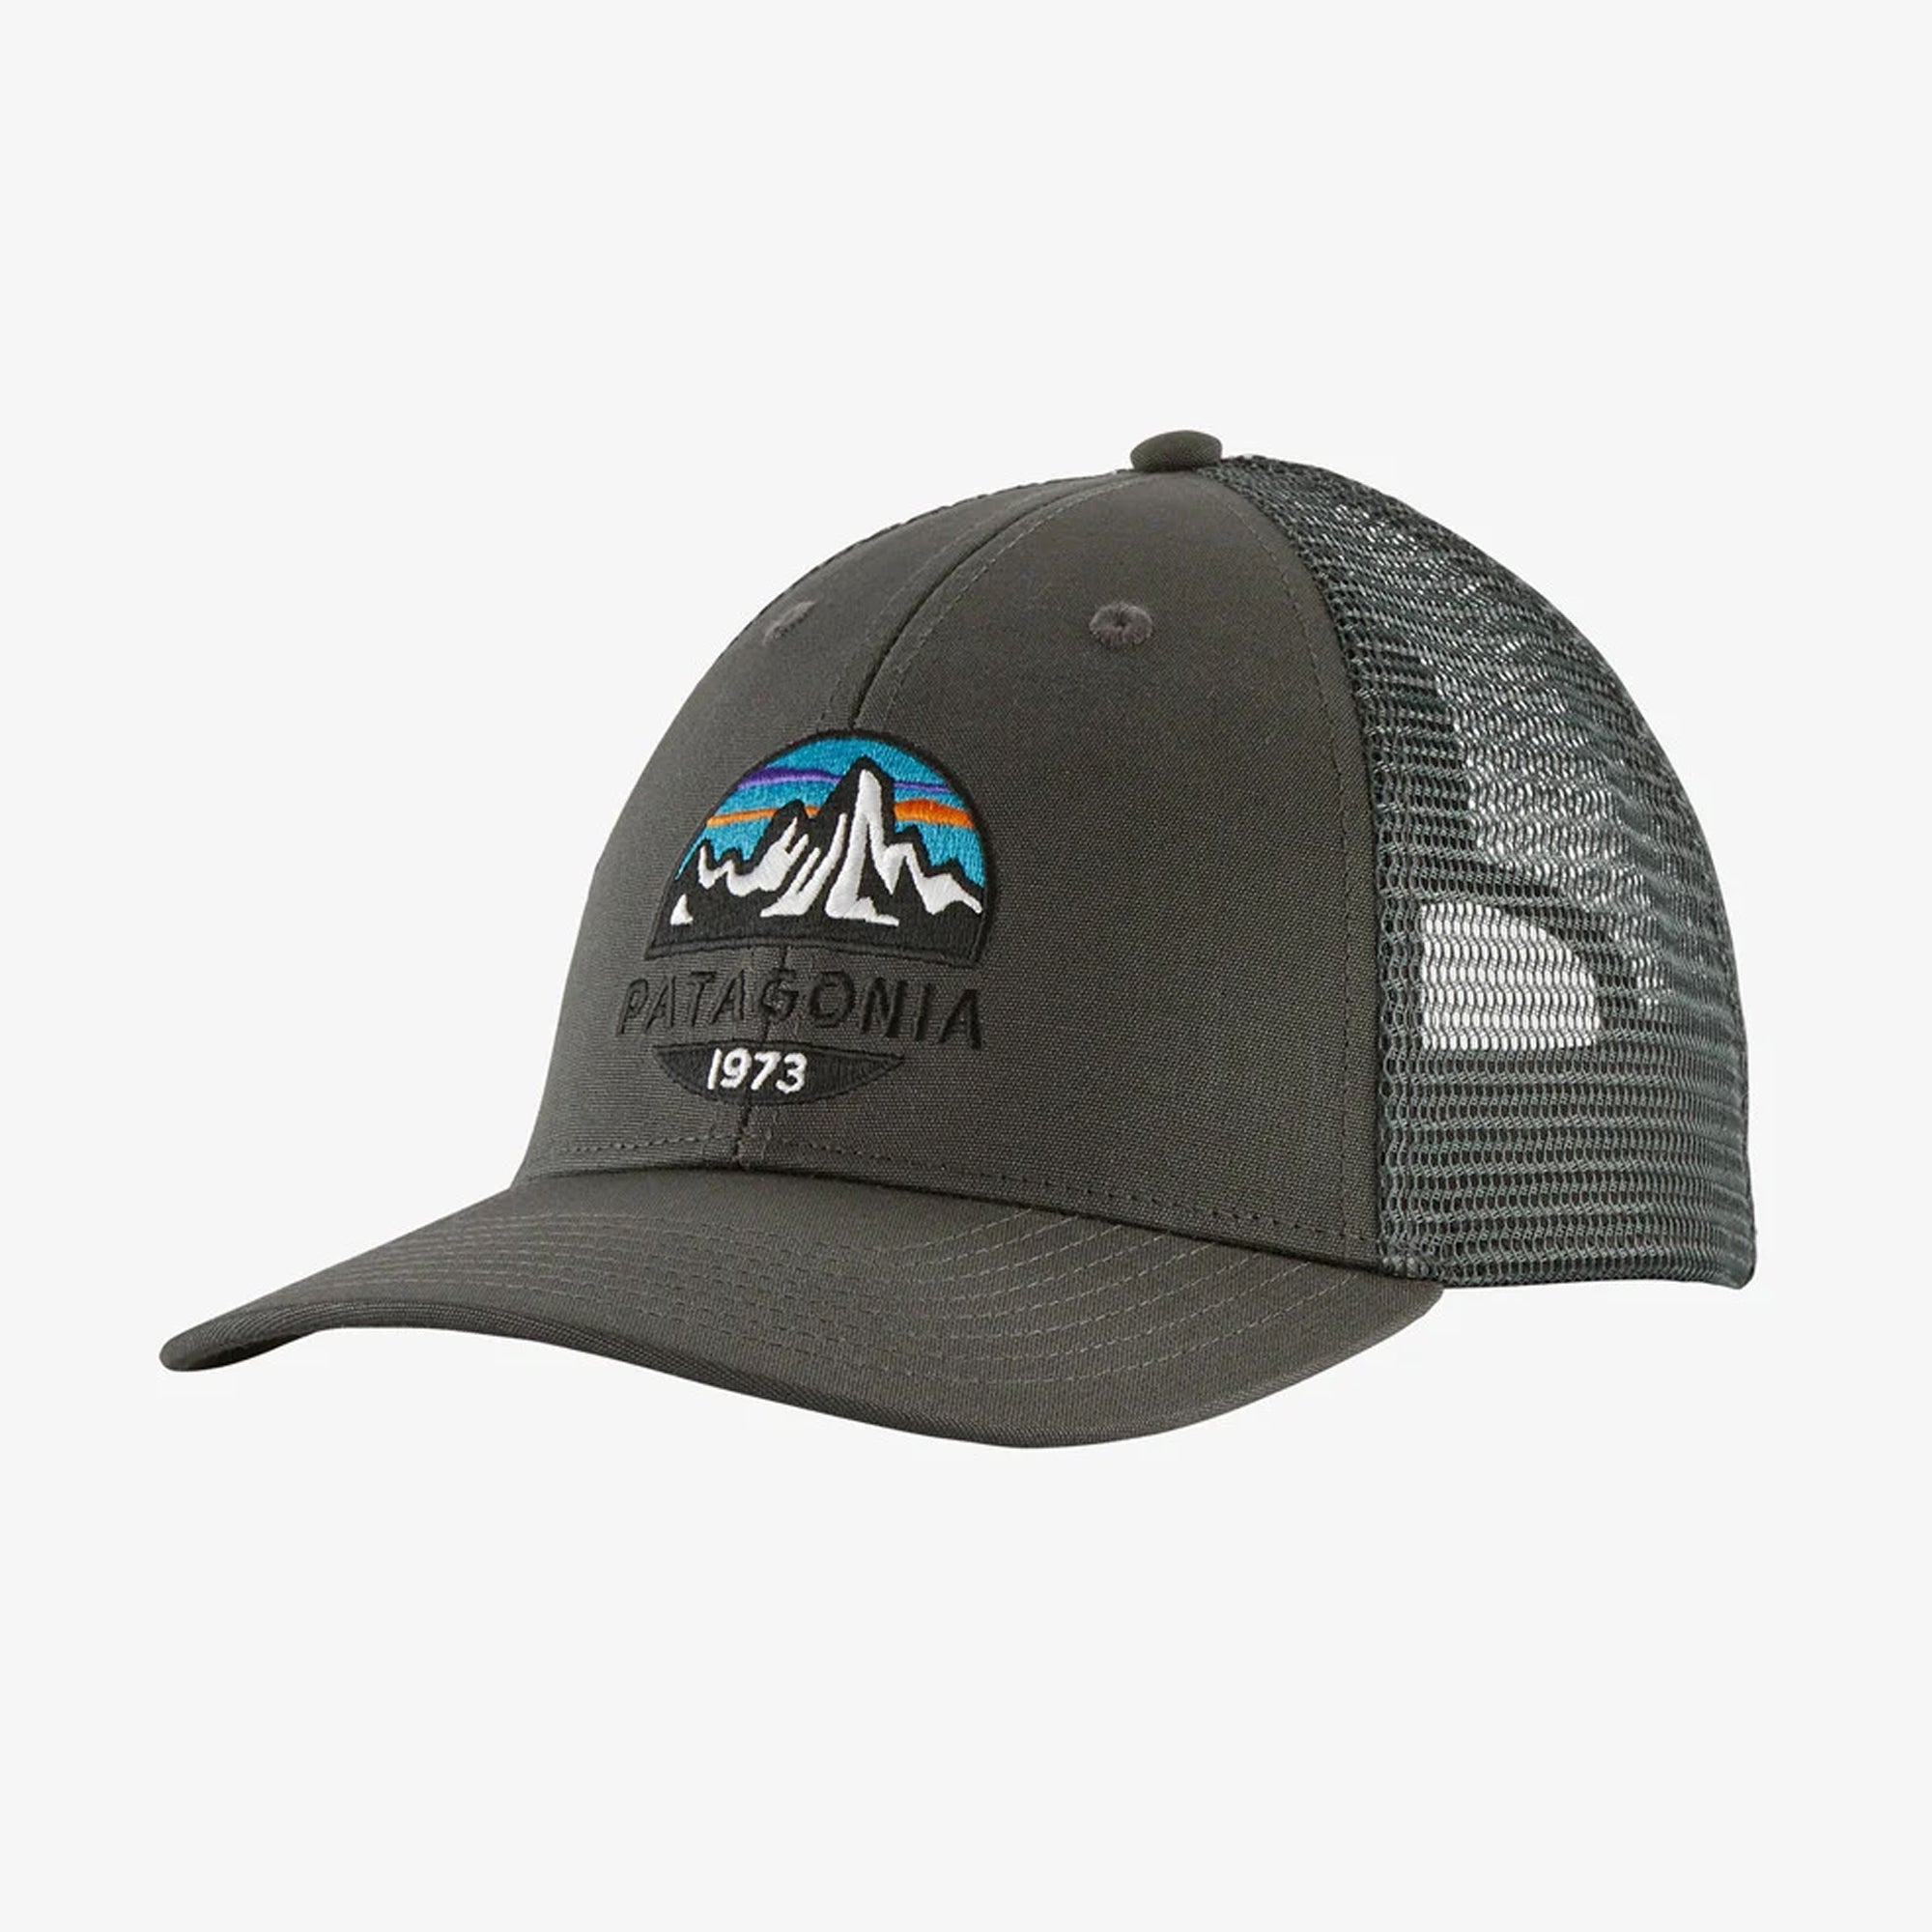 Patagonia Fitz Roy Scope LoPro Men's Trucker Hat - Forge Grey